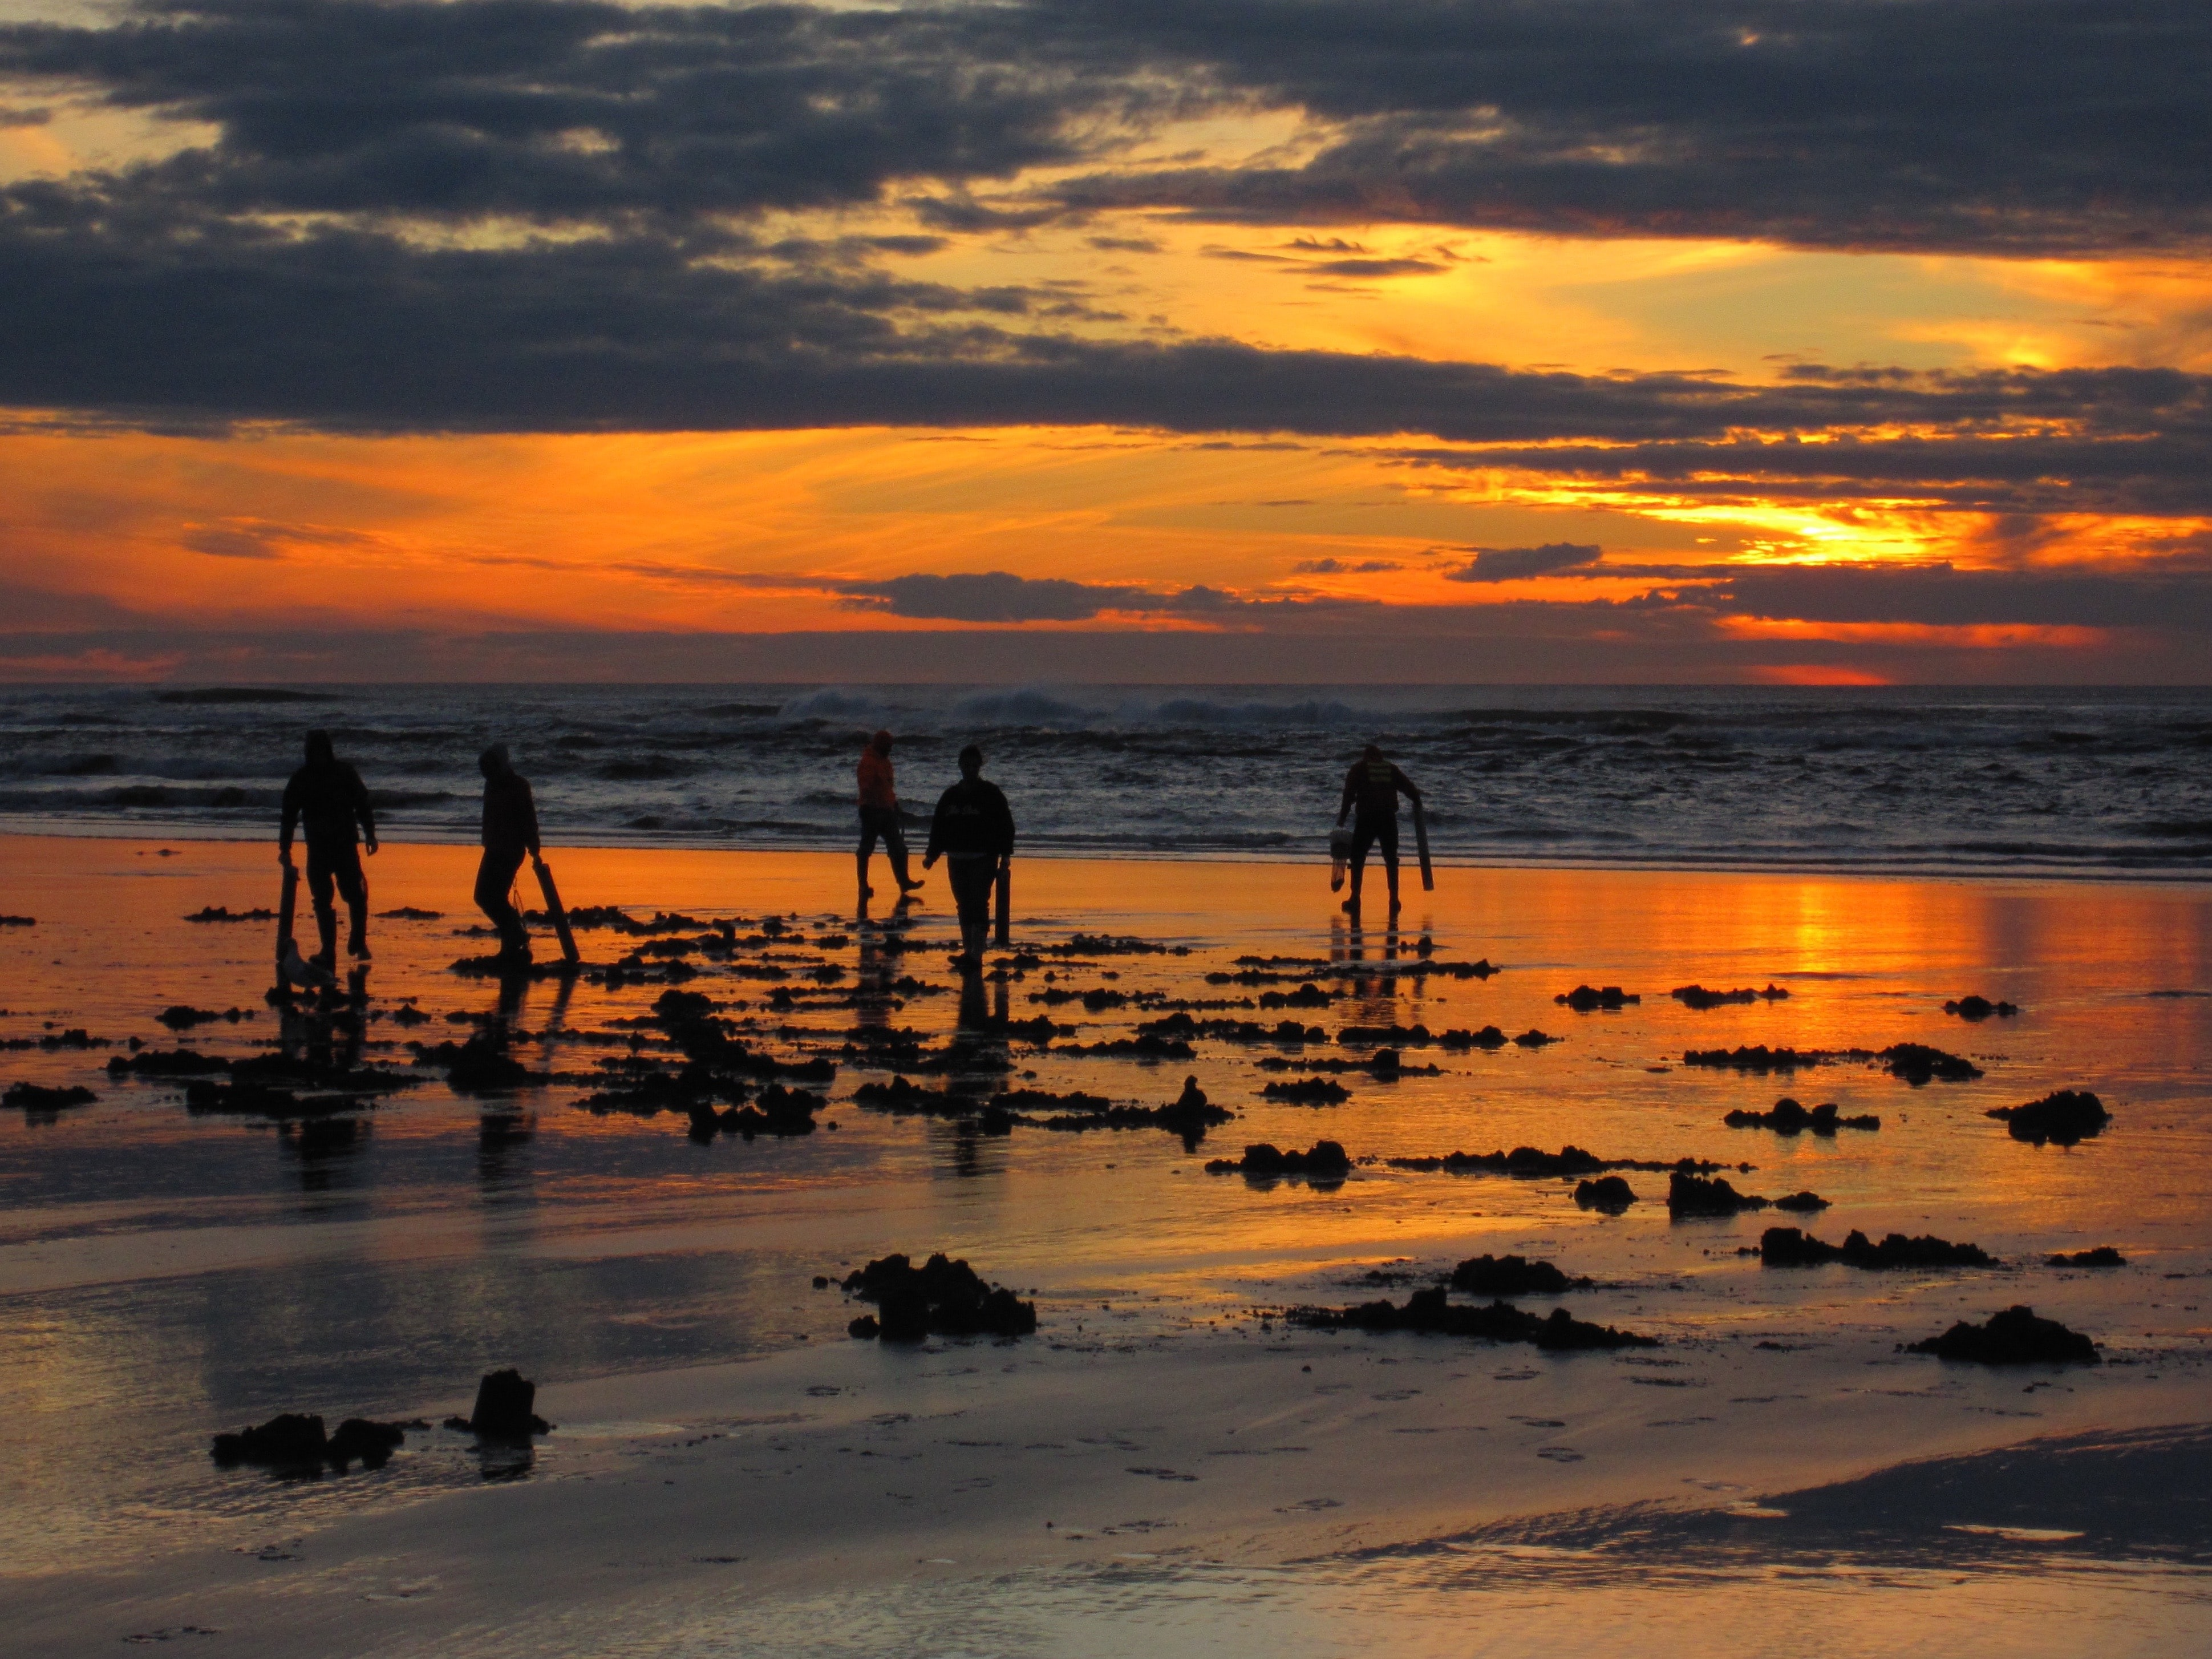 silhouette of people walking on beach during daytime